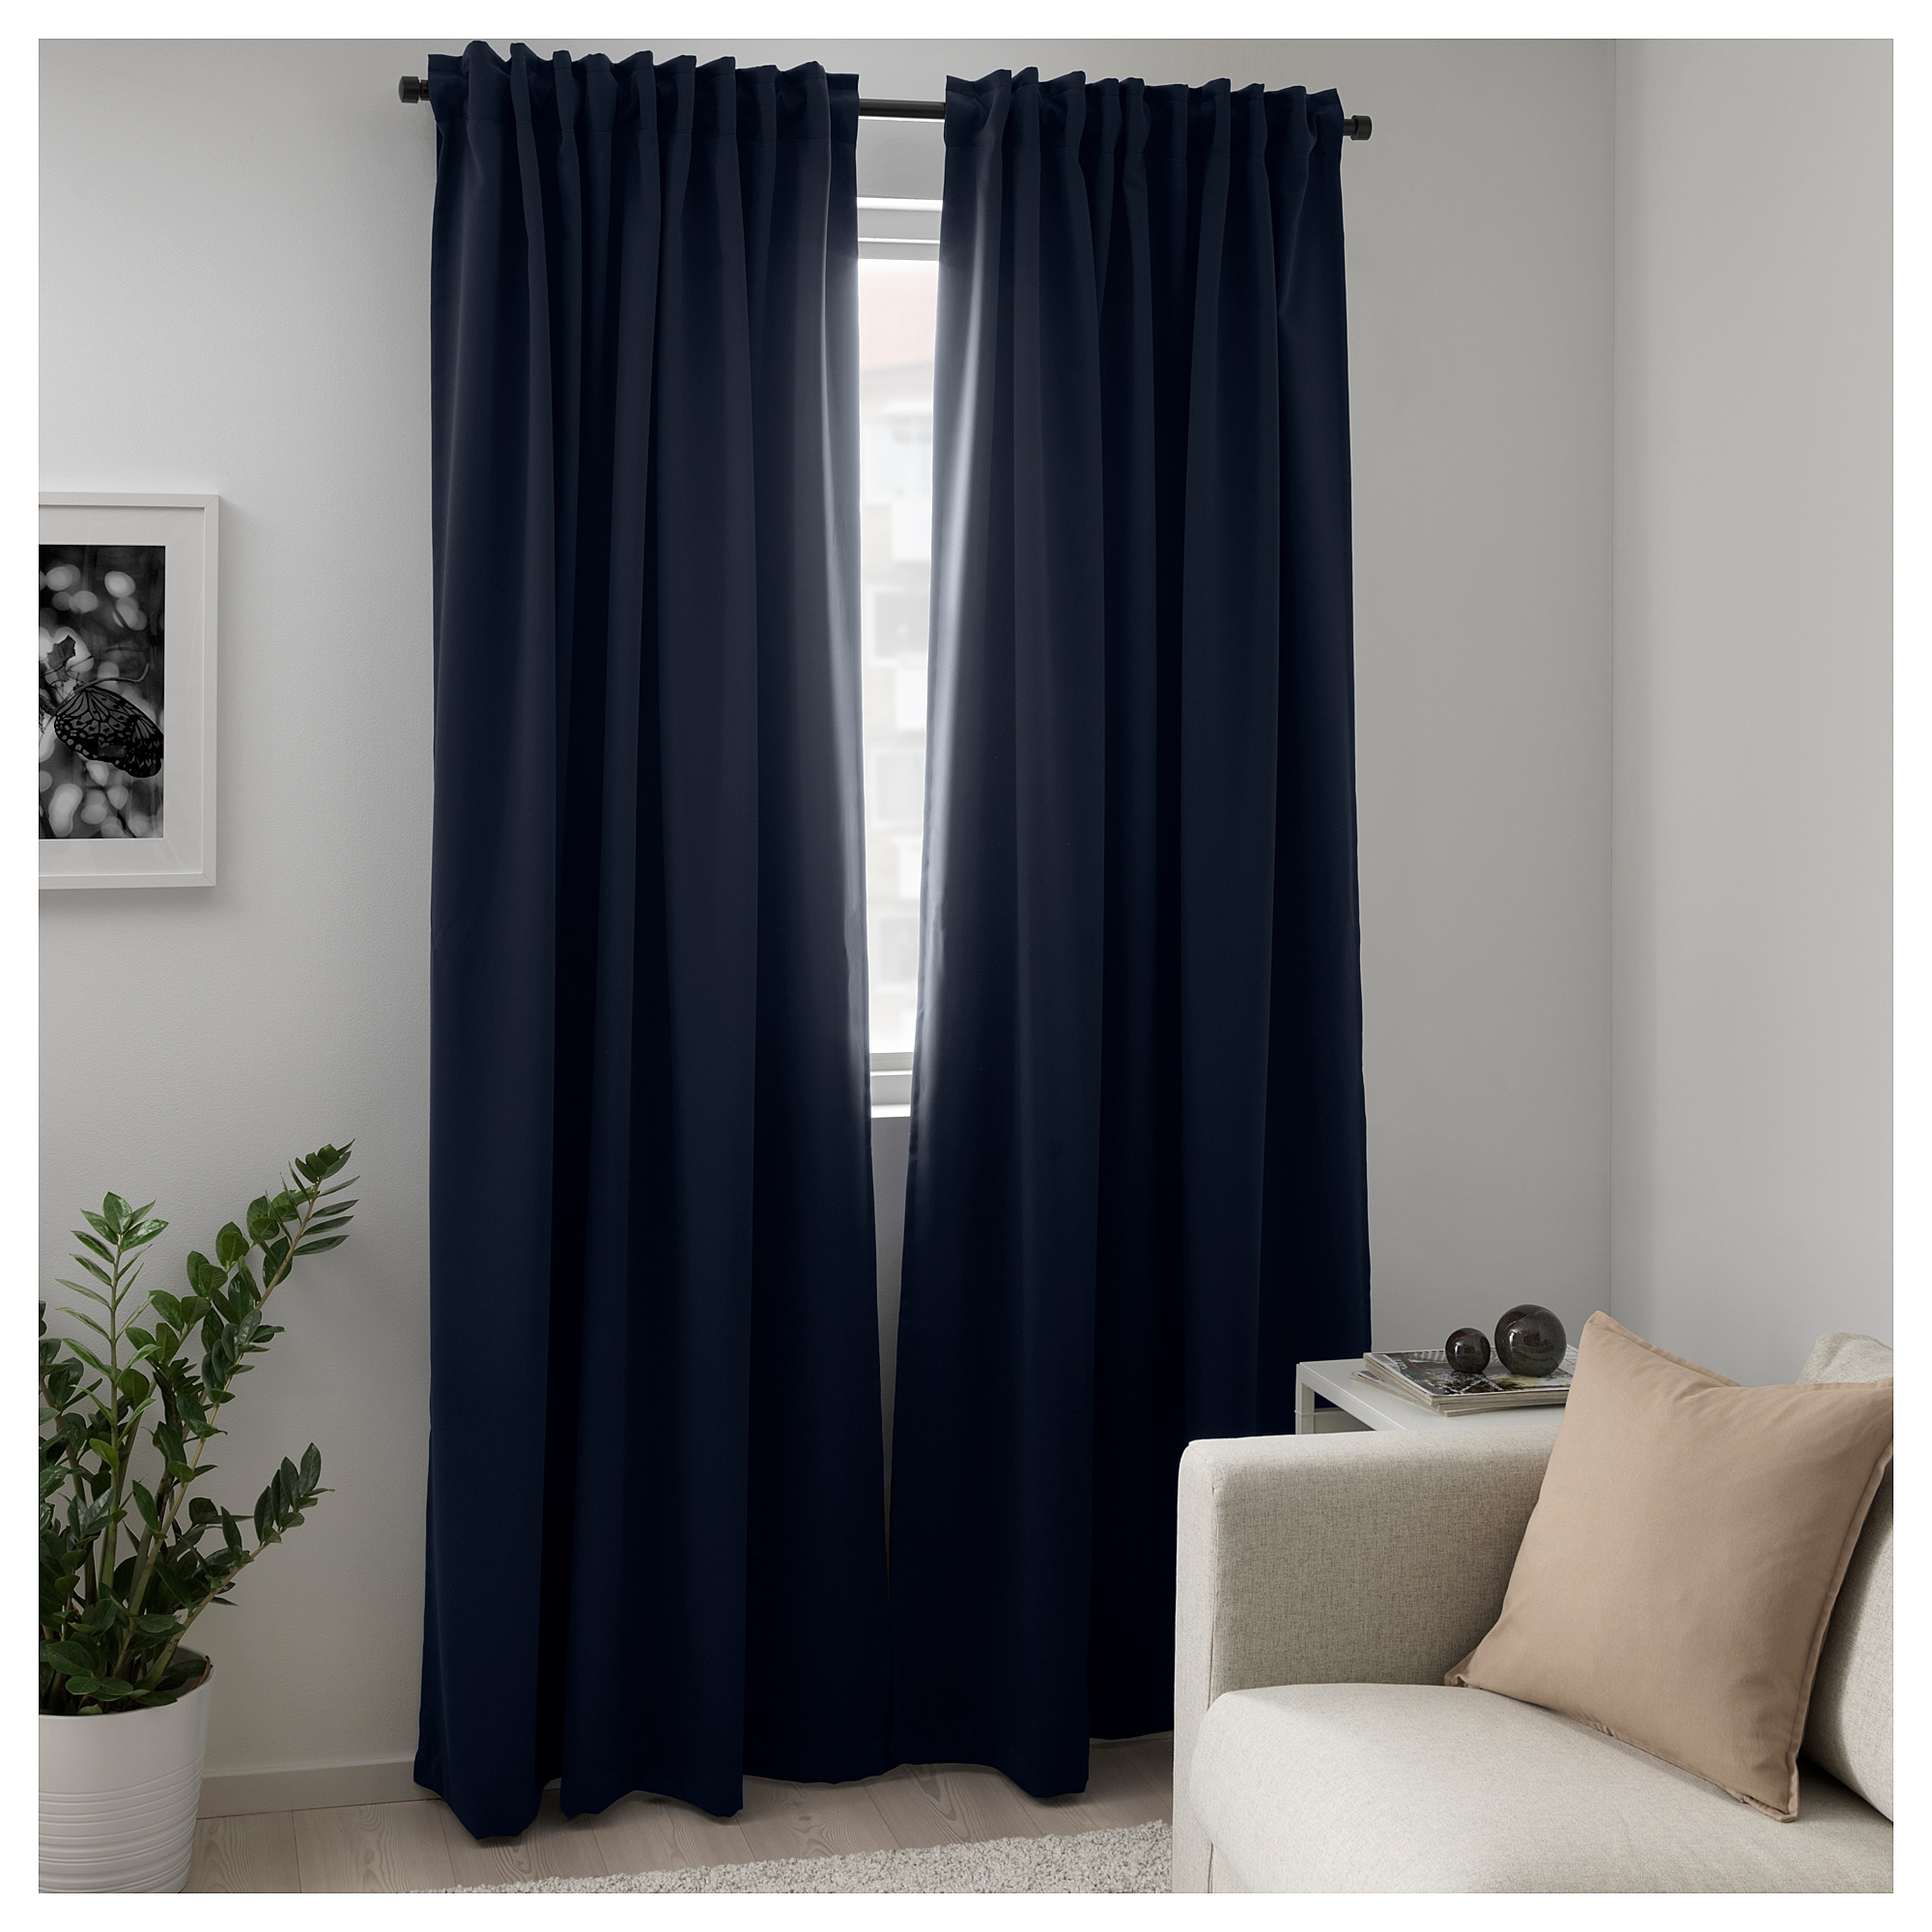 saving deal curtains blackout daily panels madonna energy yugster tone beige thermal